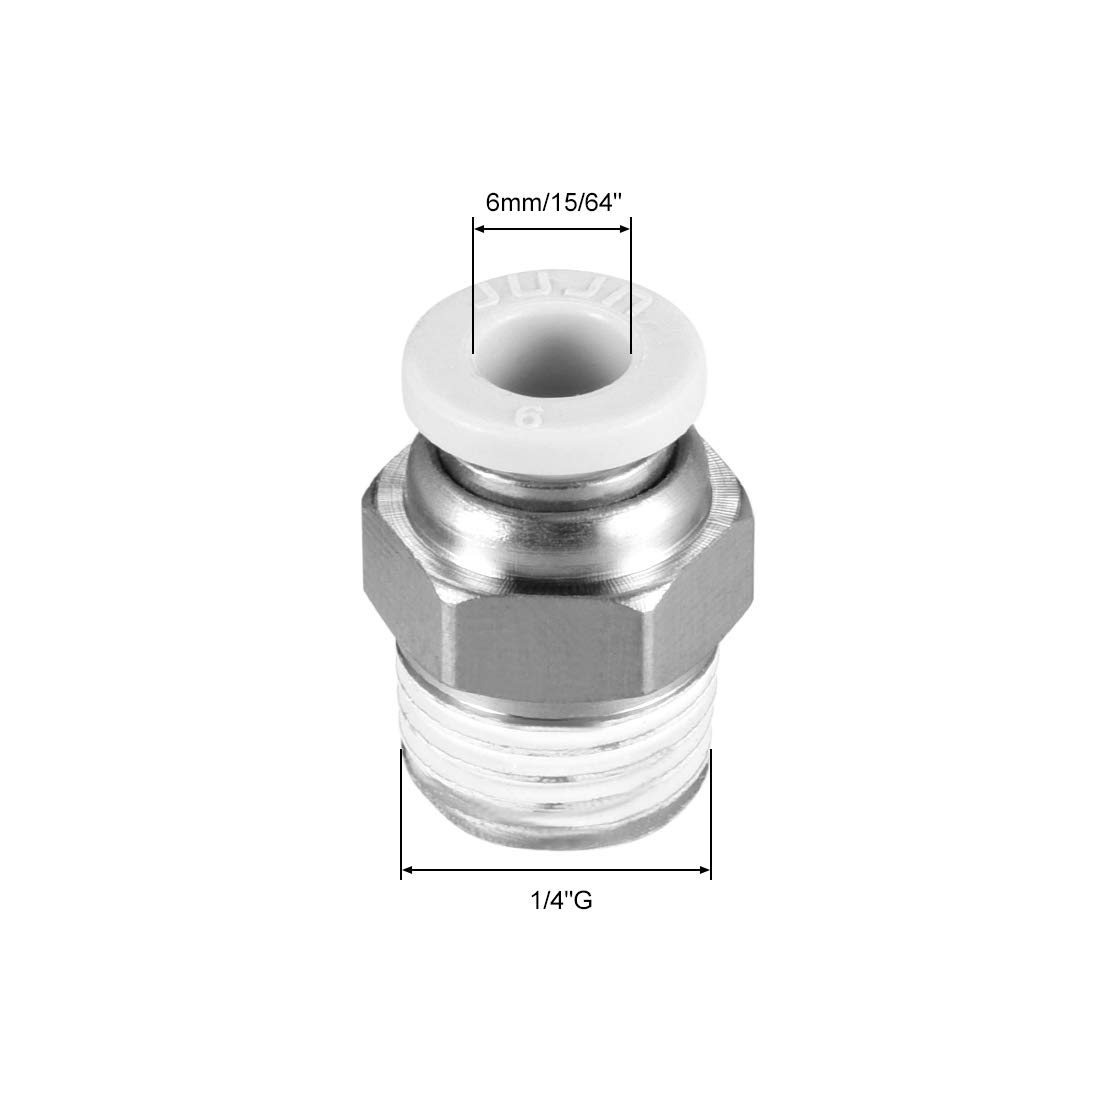 uxcell Straight Pneumatic Push to Quick Connect Fittings G1//4 Male x 6mm Tube OD White